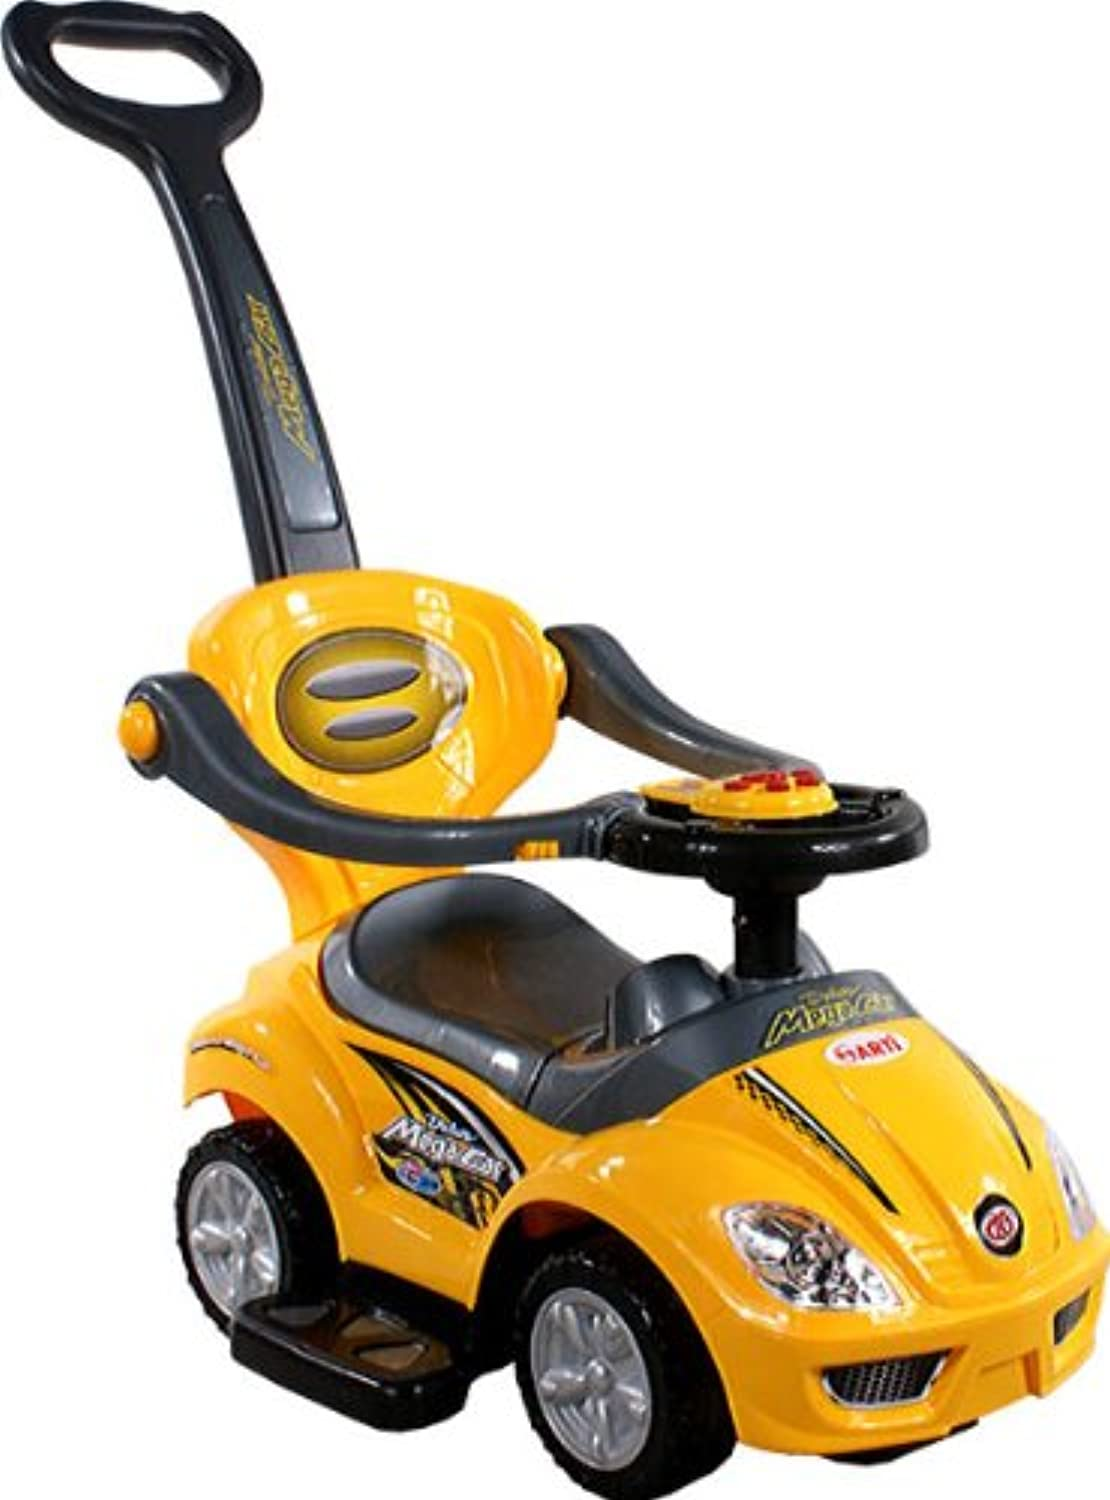 ARTI Baby Car 382 Mega Car Deluxe Yellow RideOn Activity Toy with Parent Handle